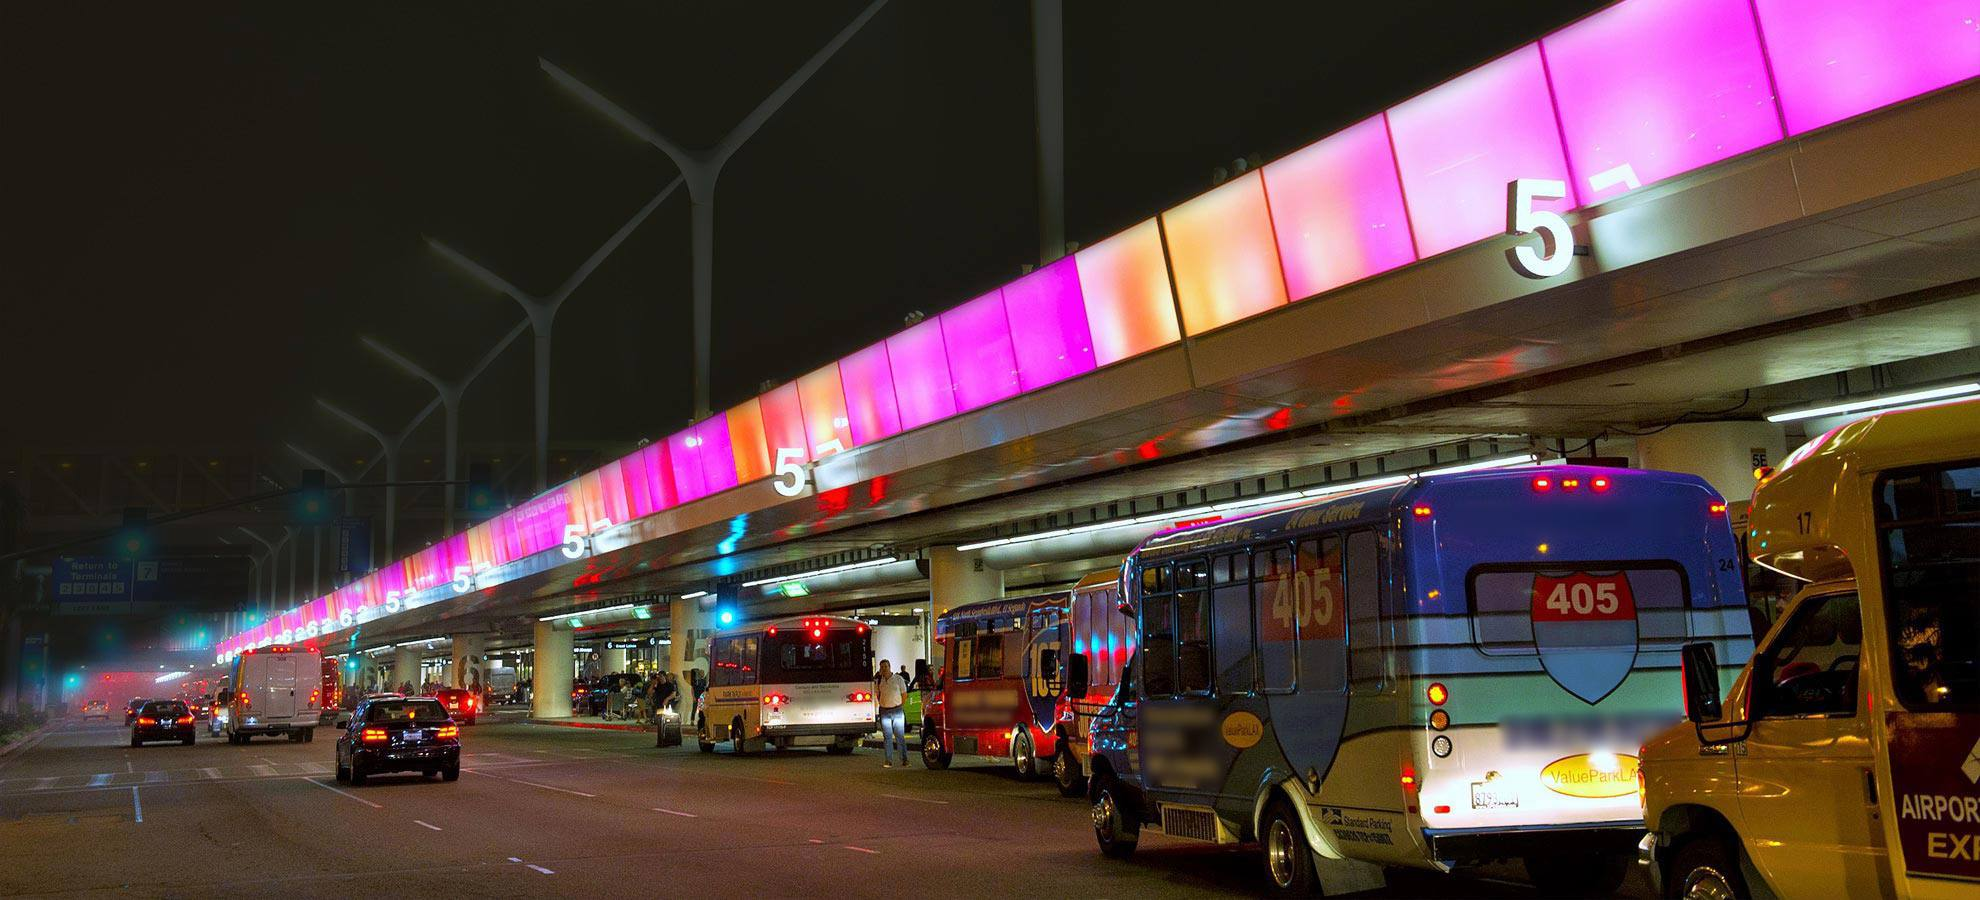 FlyAway drop off at Terminal 5 | Photo: LAX